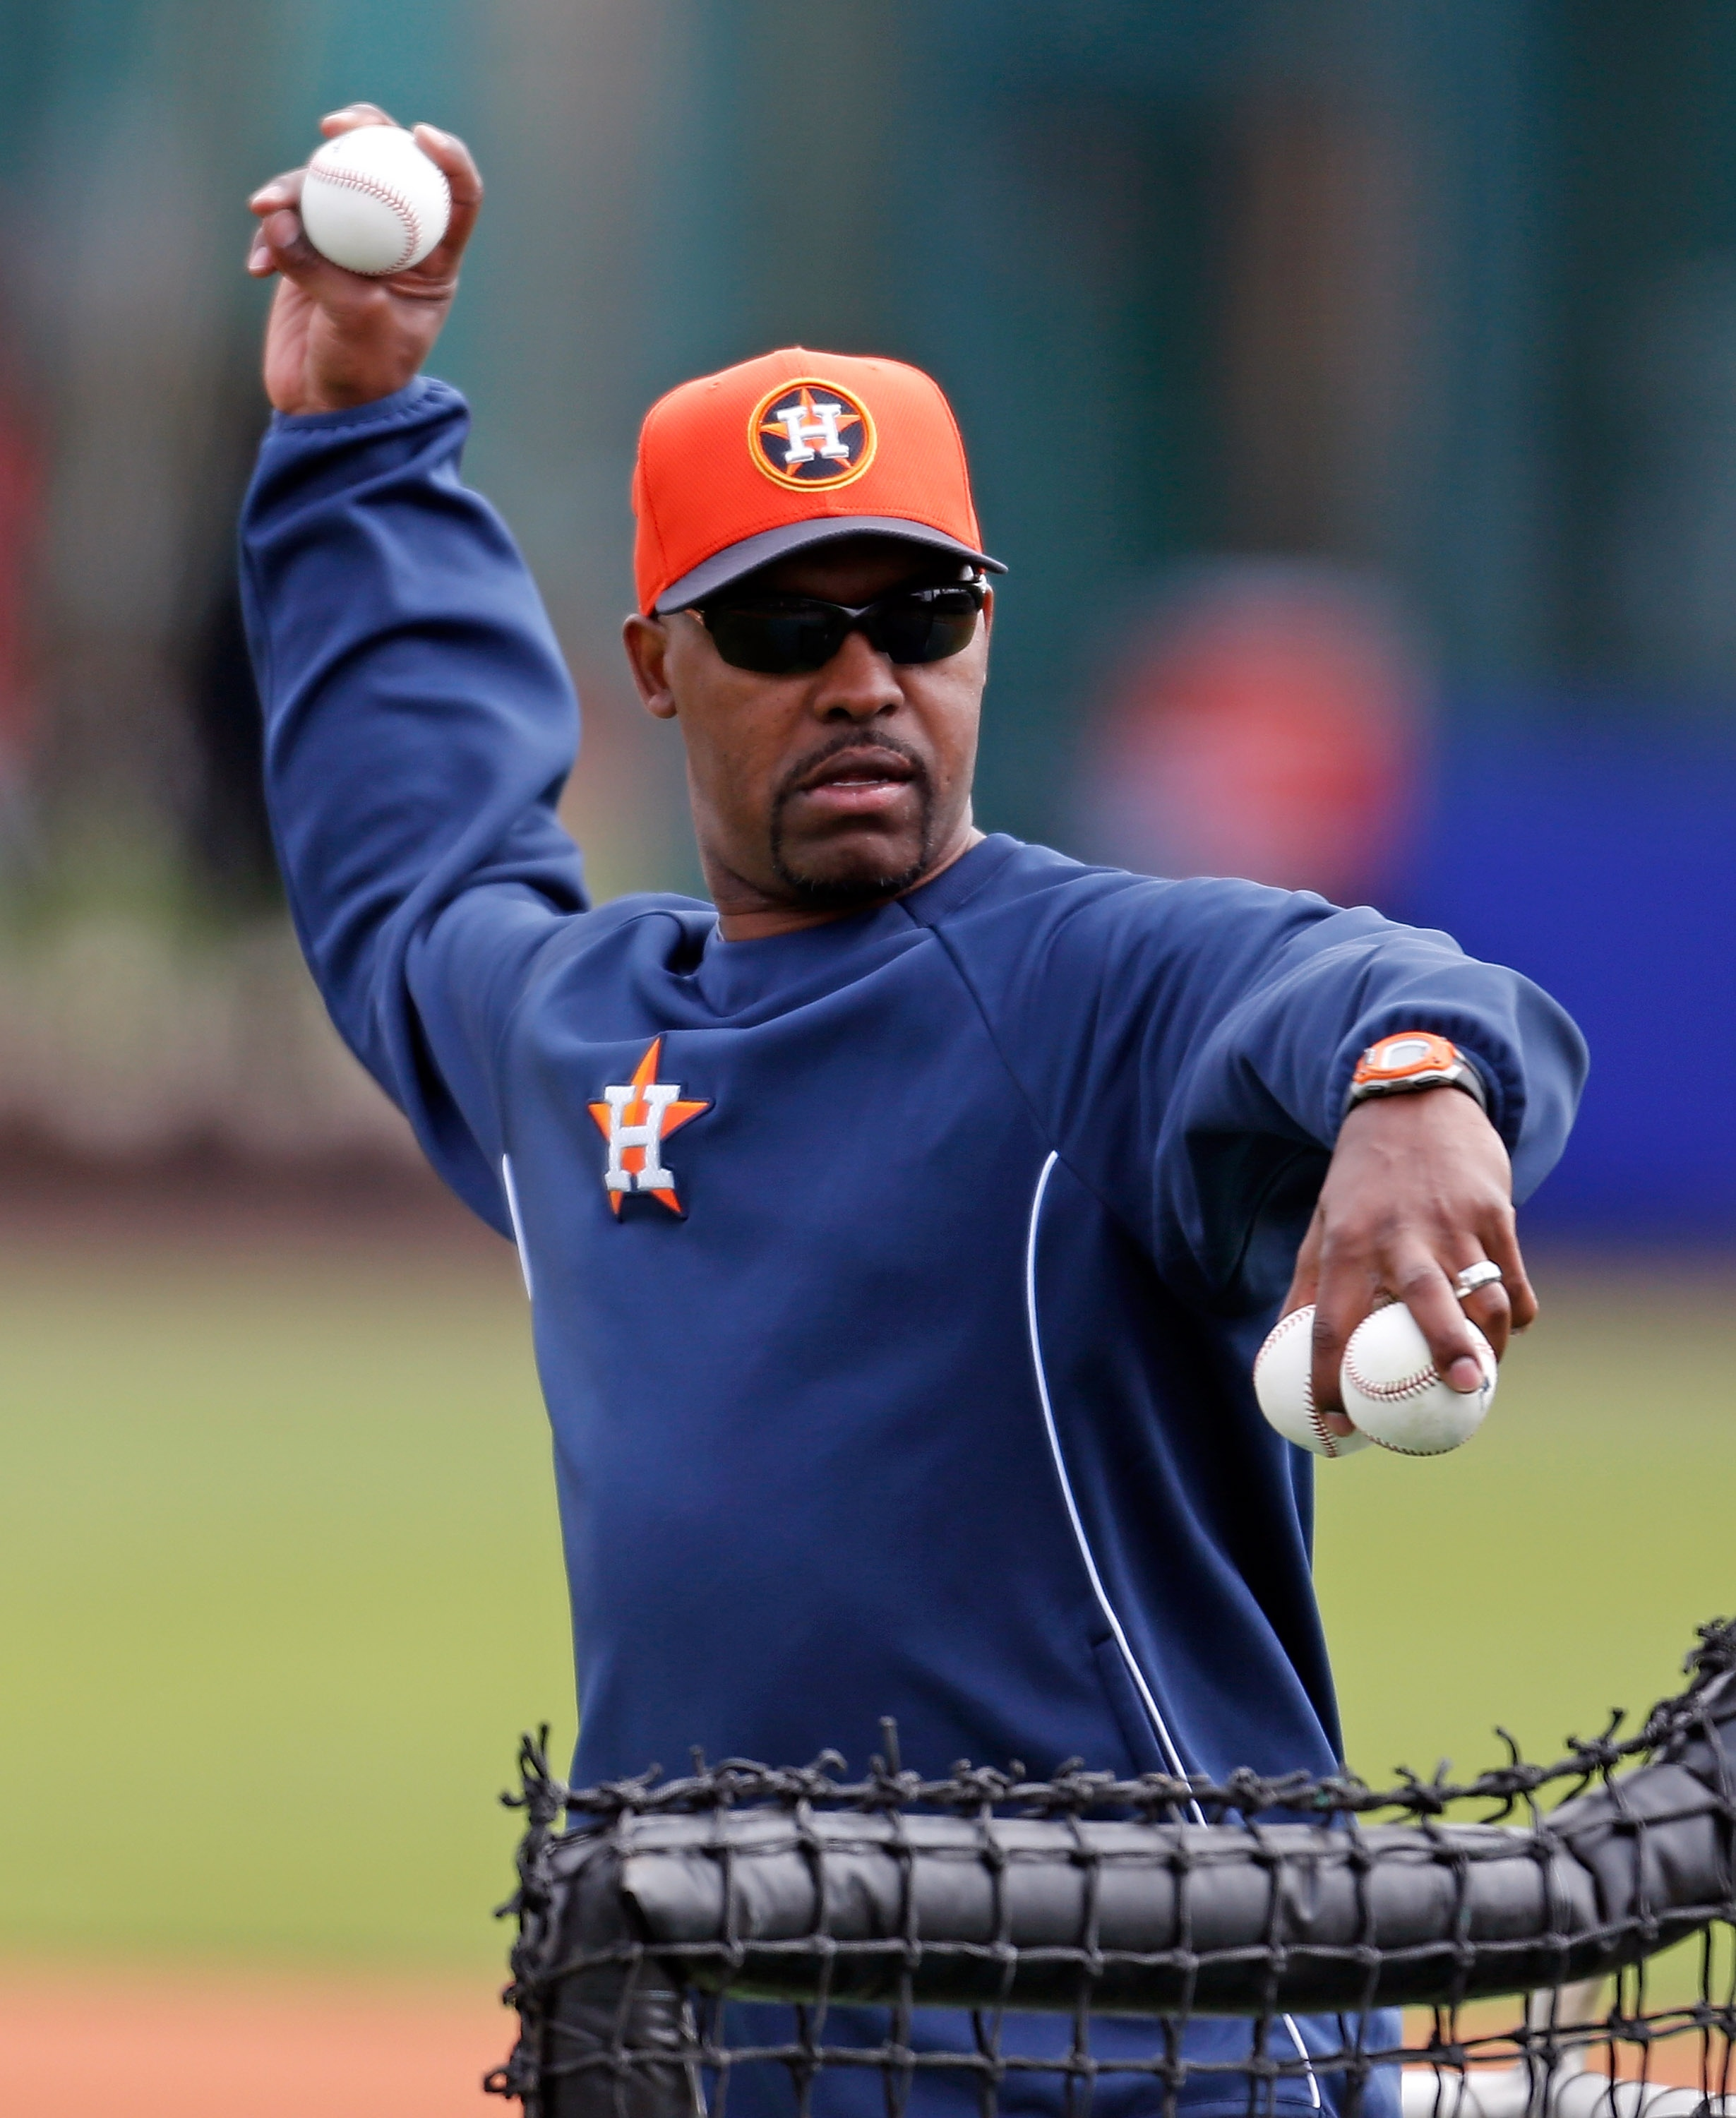 Manager Bo Porter says just about every player in uniform has a shot at cracking the Astros' big league roster. (Getty Images)